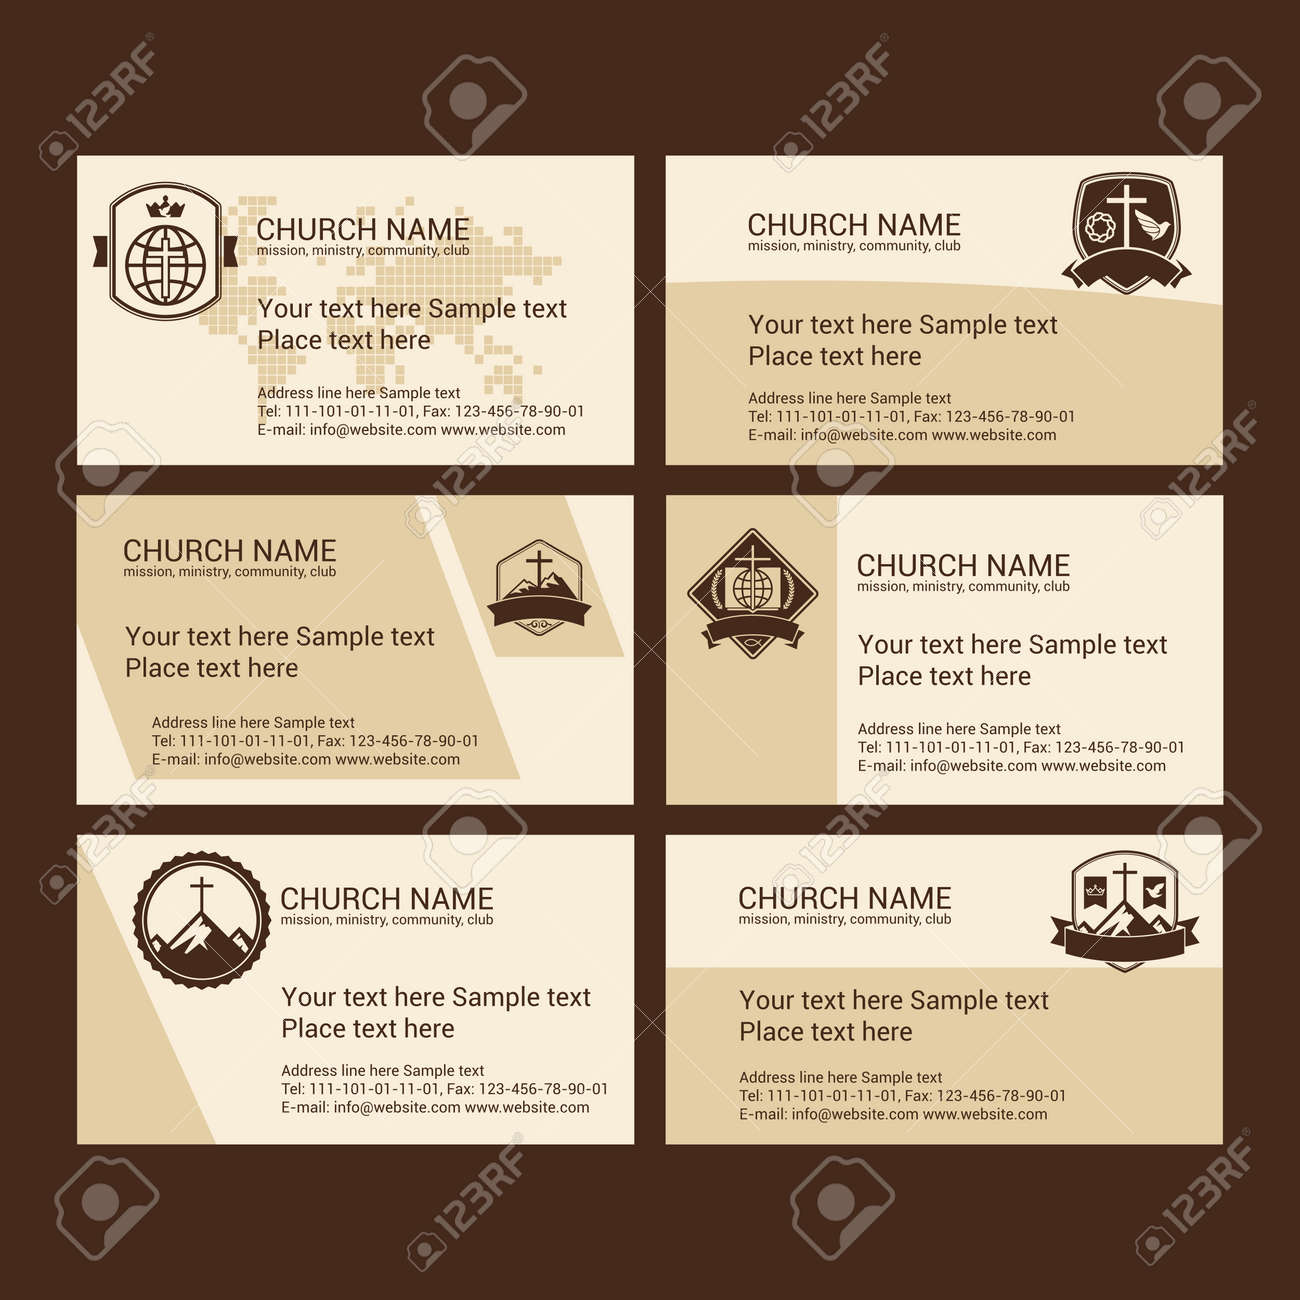 Free printable christian business cards choice image card design cute christian business cards images business card ideas etadamfo free printable christian business cards gallery card reheart Gallery